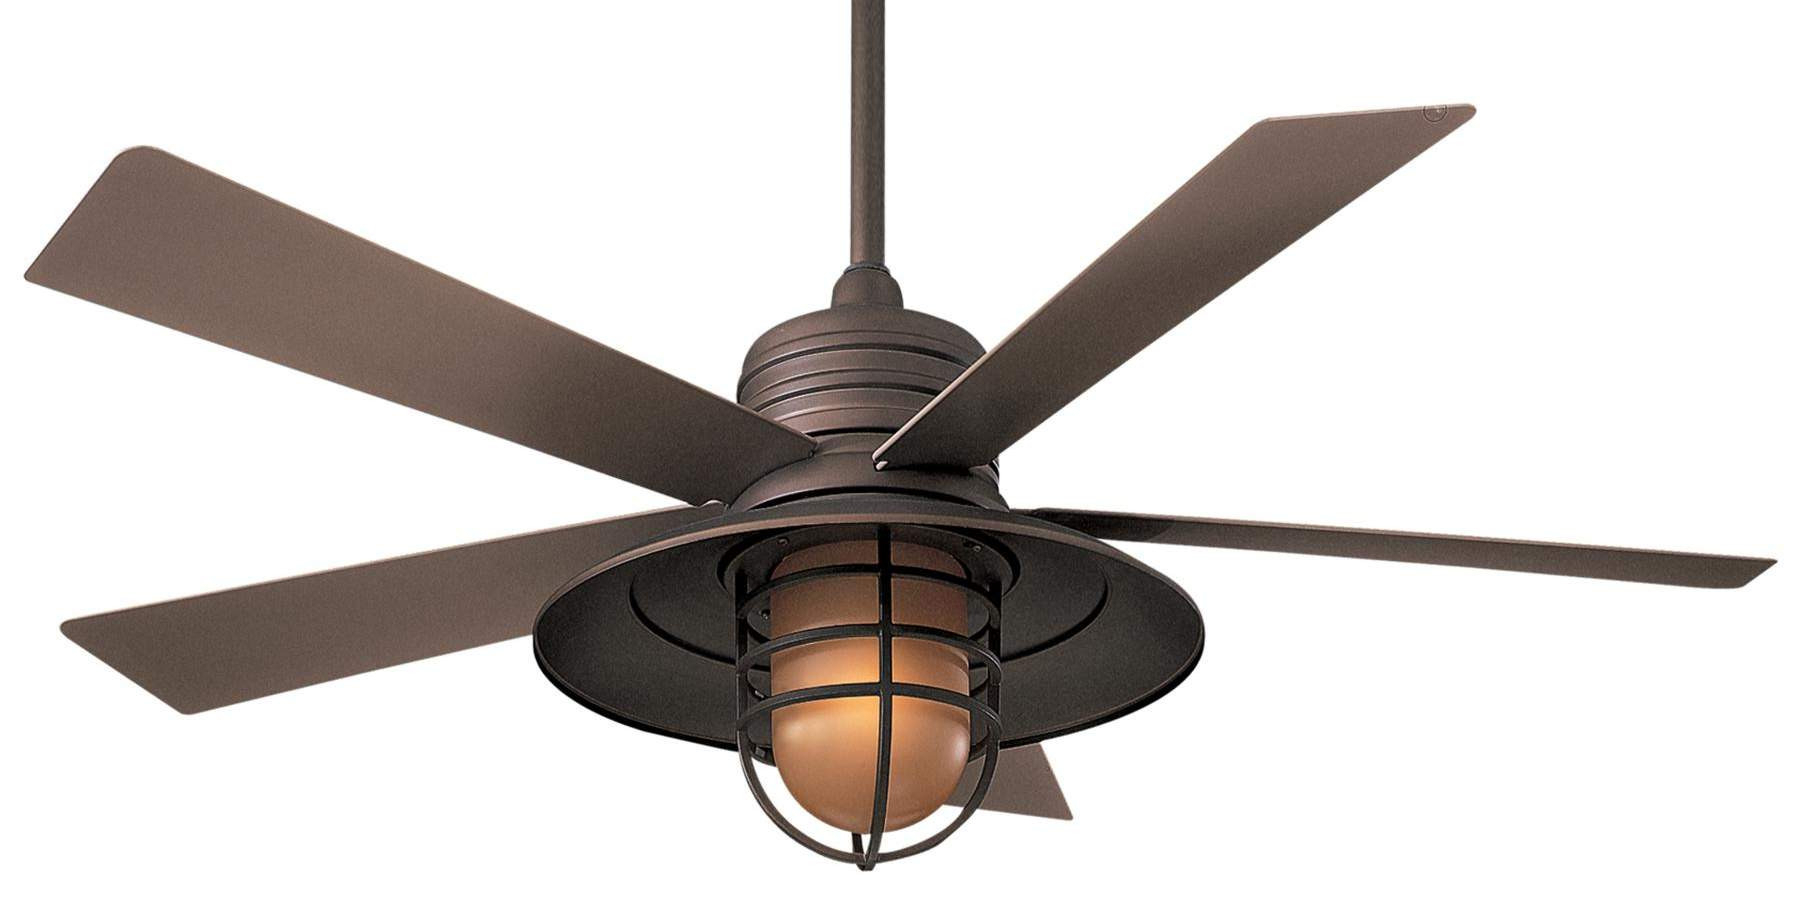 2020 Minka Aire Rainman Ceiling Fan Model F582 Orb In Oil Rubbed Intended For Rainman 5 Blade Outdoor Ceiling Fans (View 19 of 20)